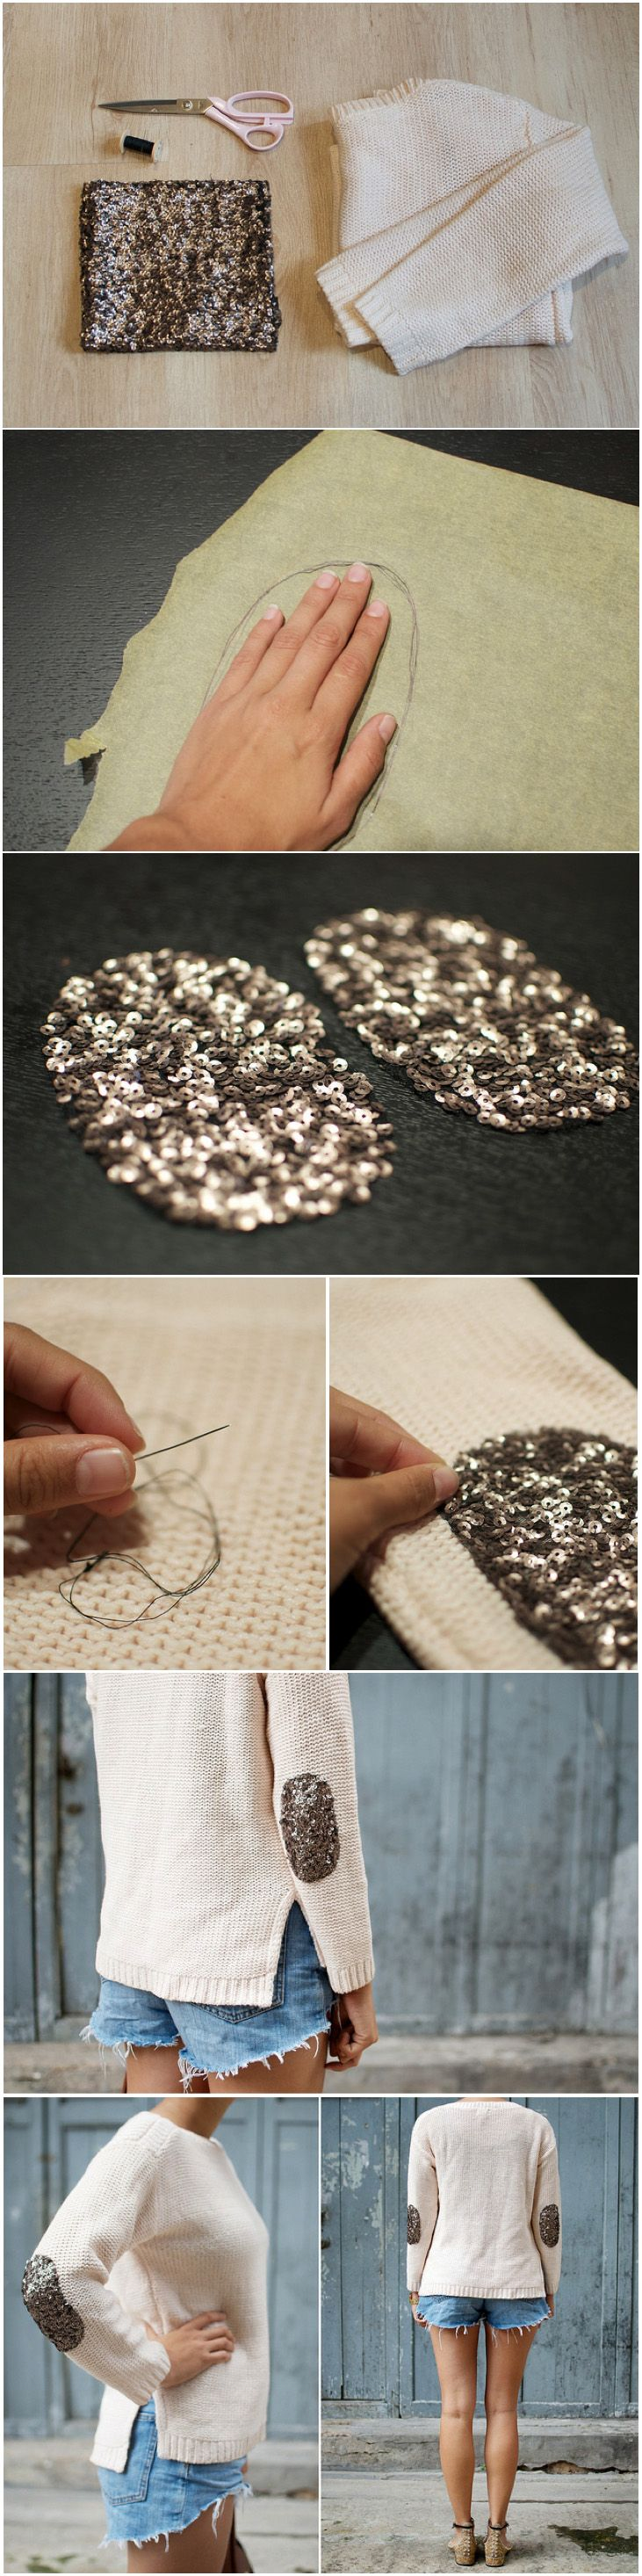 Sequin elbow patches!